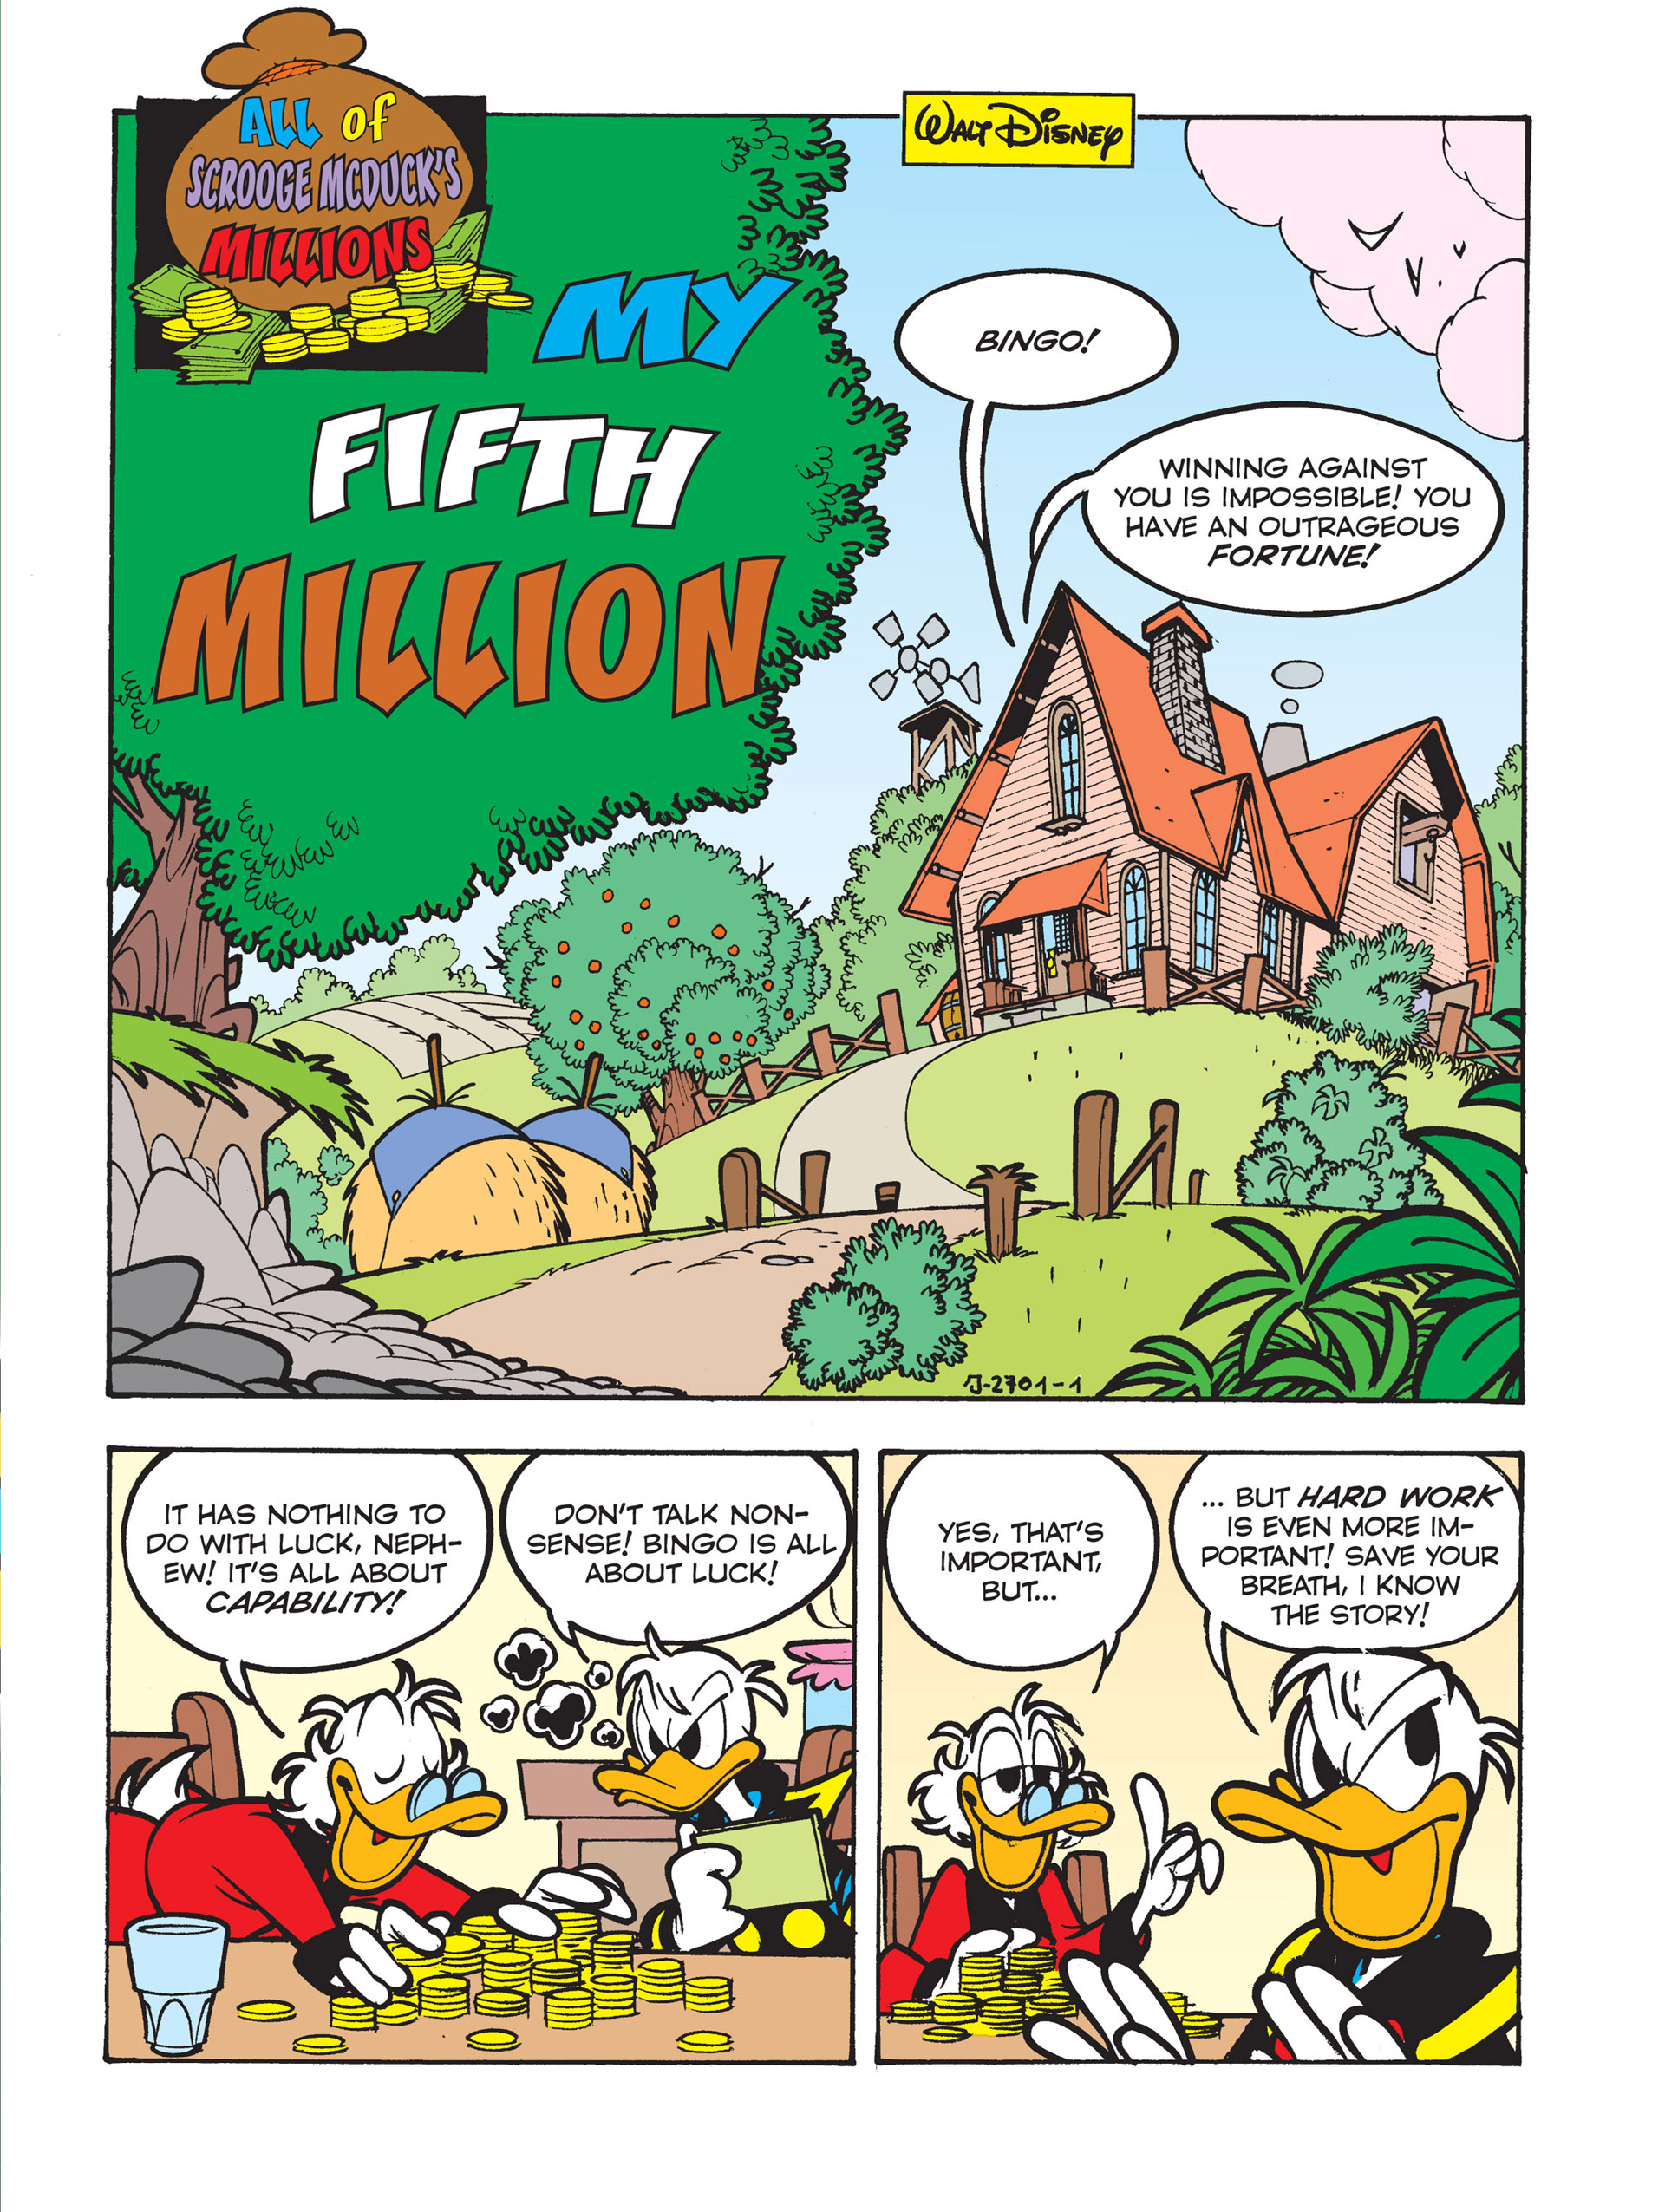 Read online All of Scrooge McDuck's Millions comic -  Issue #5 - 3